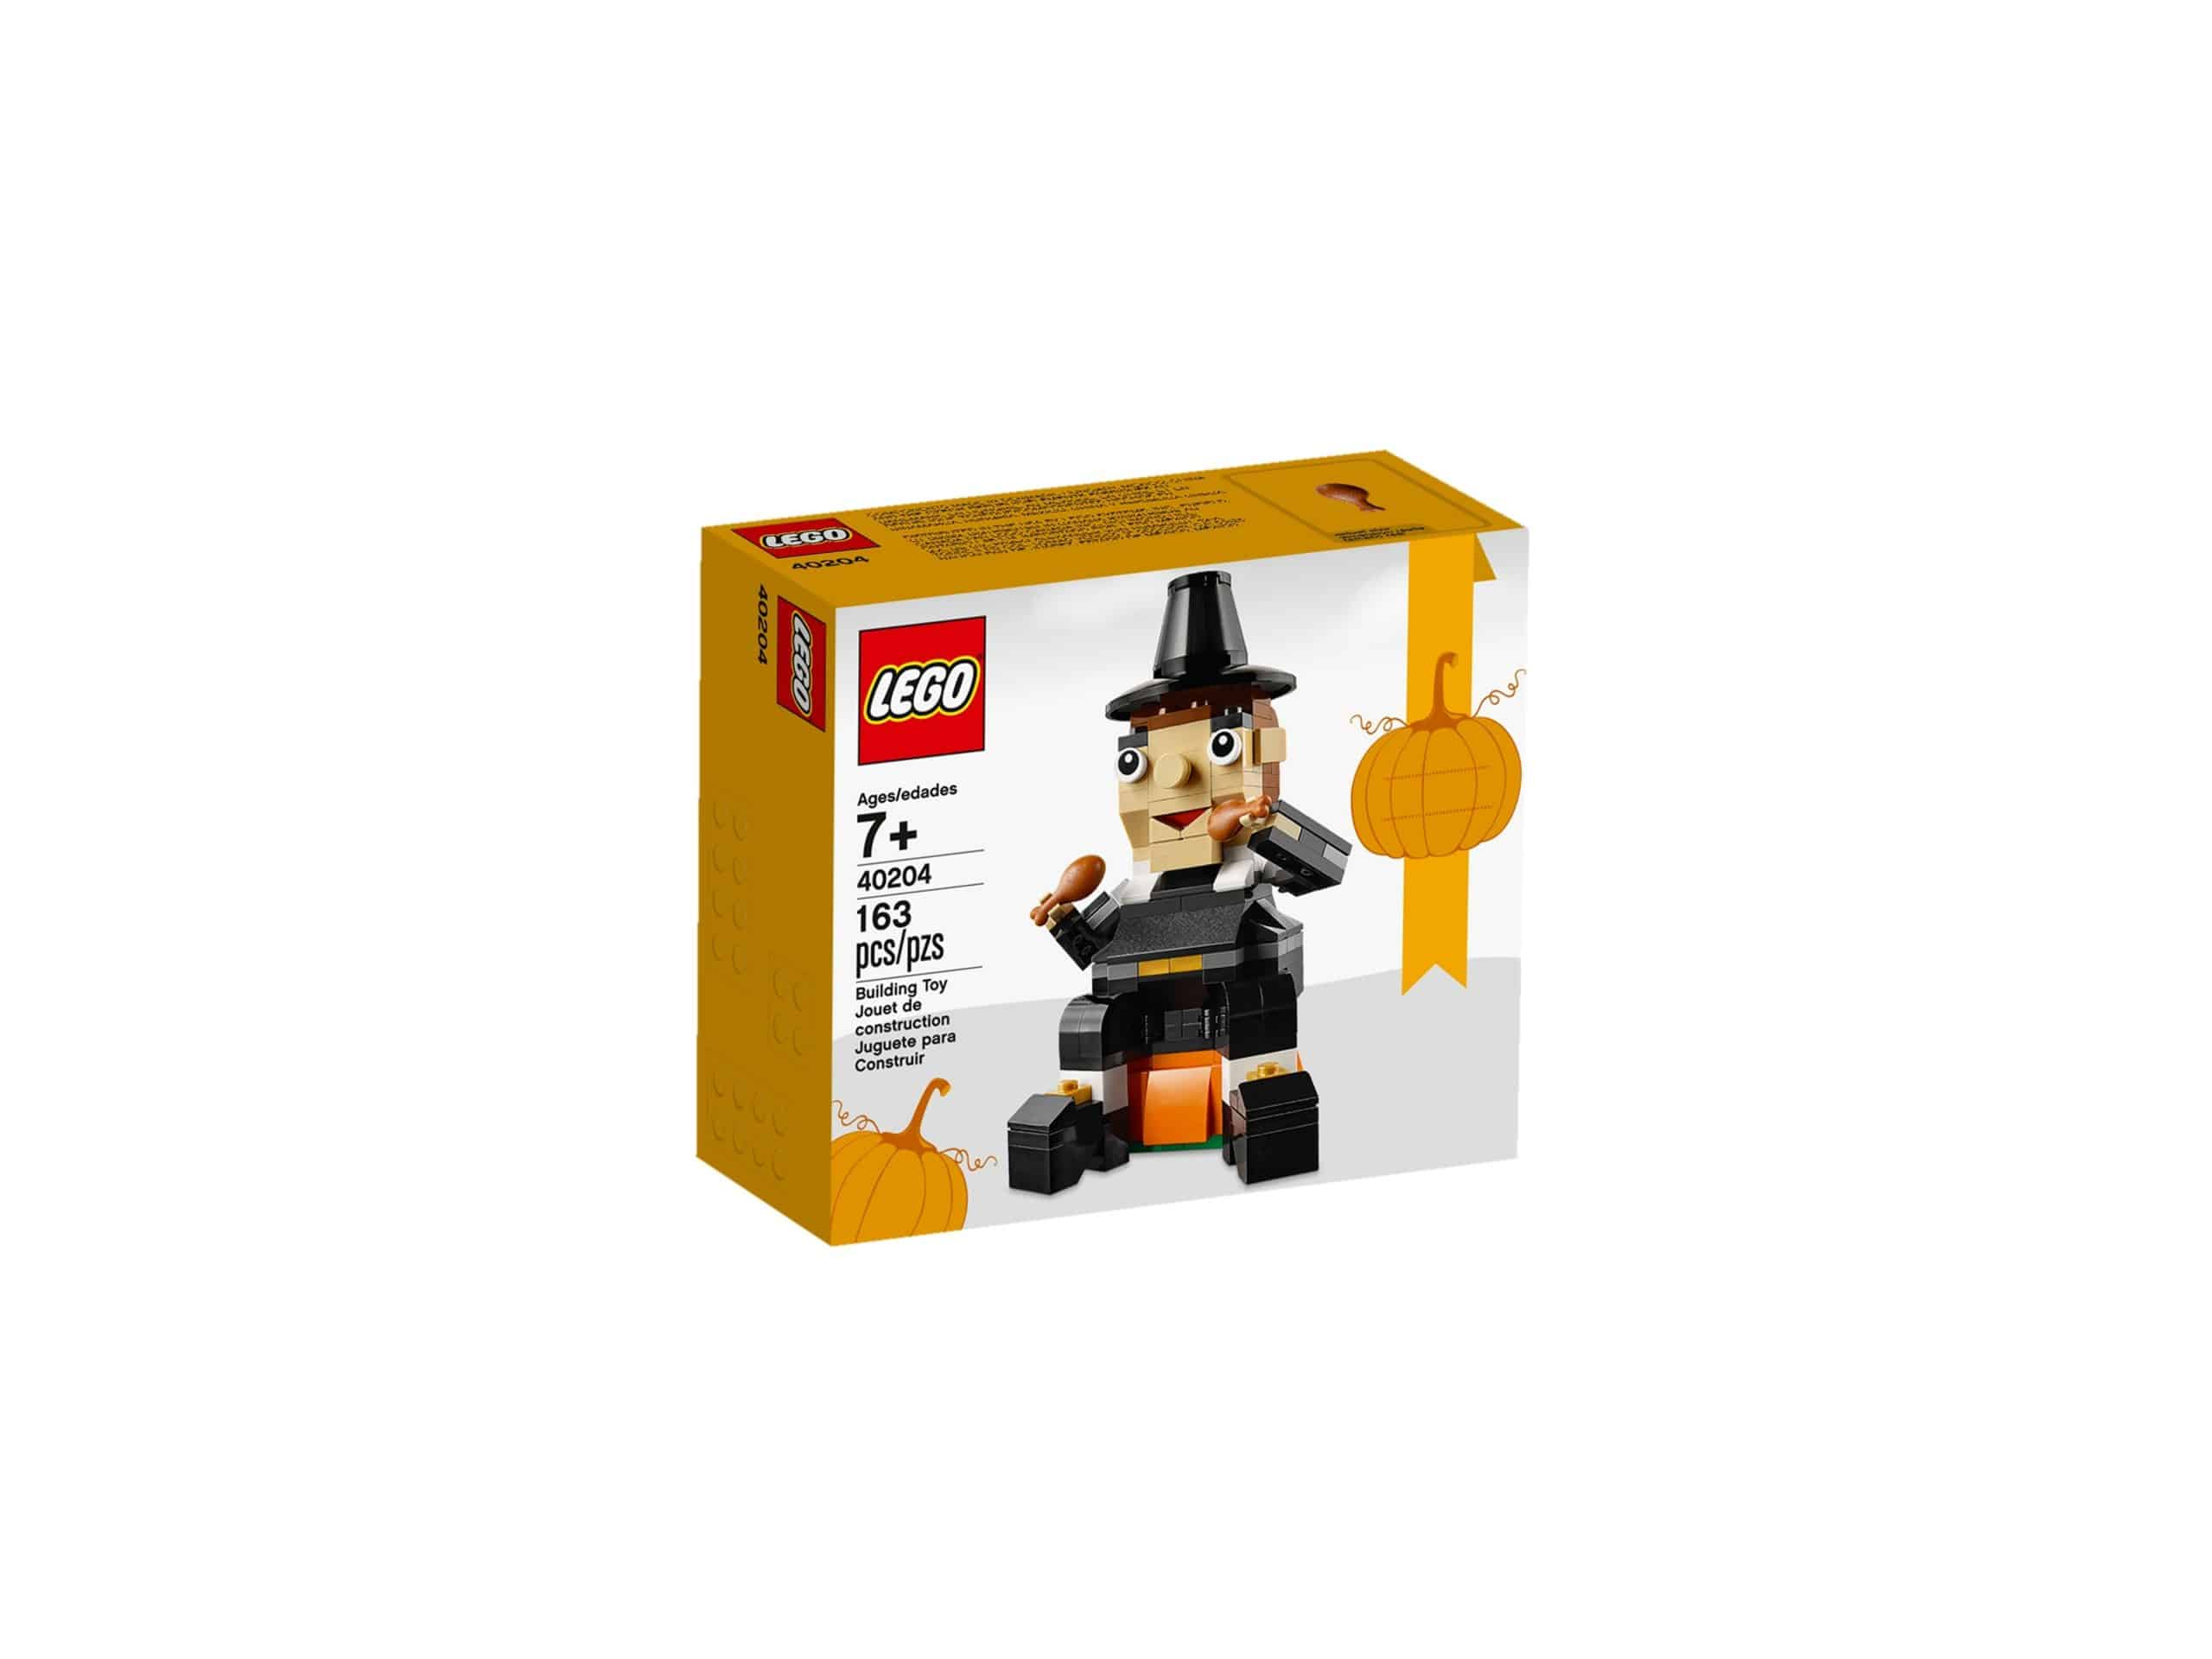 lego 40204 thanksgiving scaled